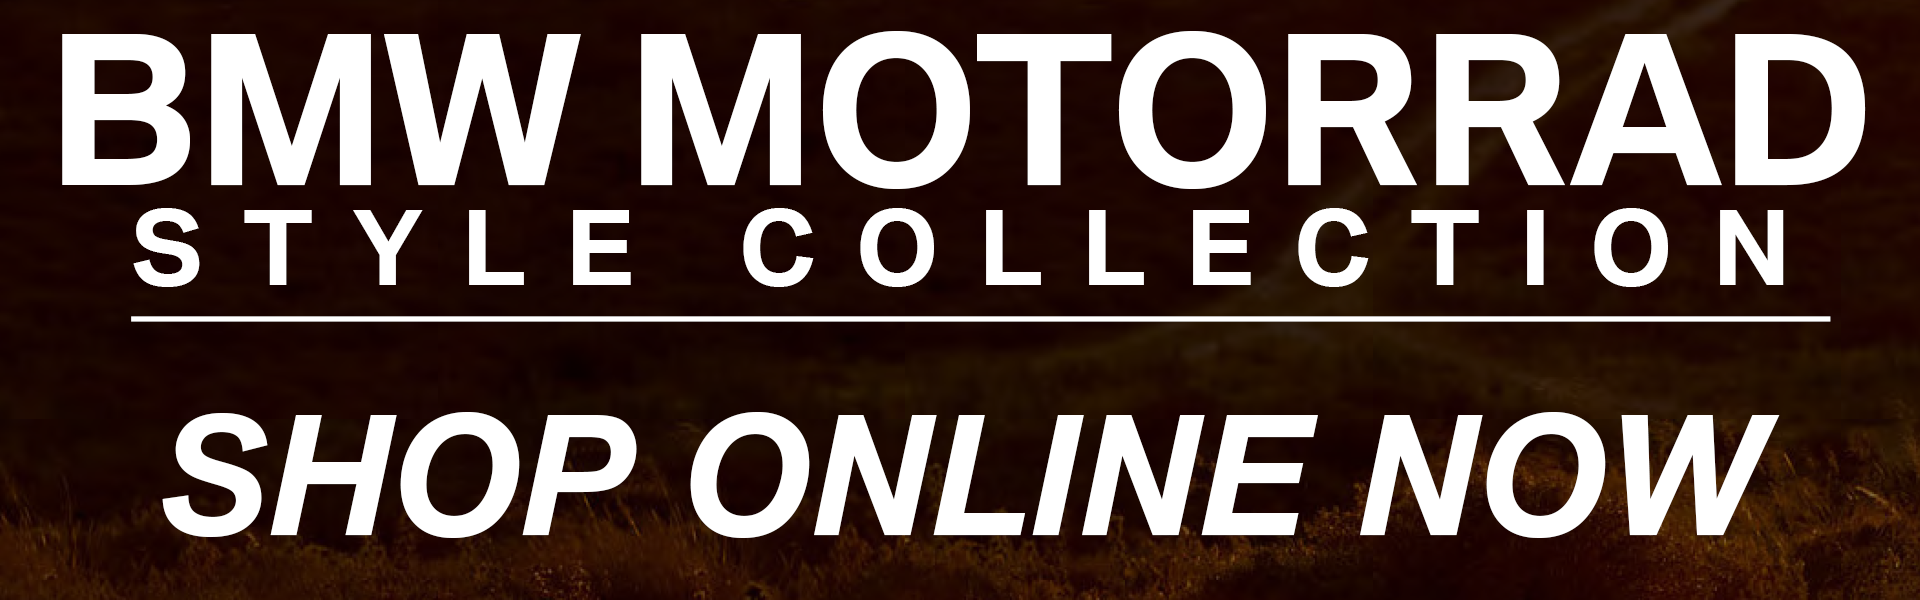 BMW Motorrad Style Collection Now Available Online - Something For Every BMW Motorcycle Enthusiast